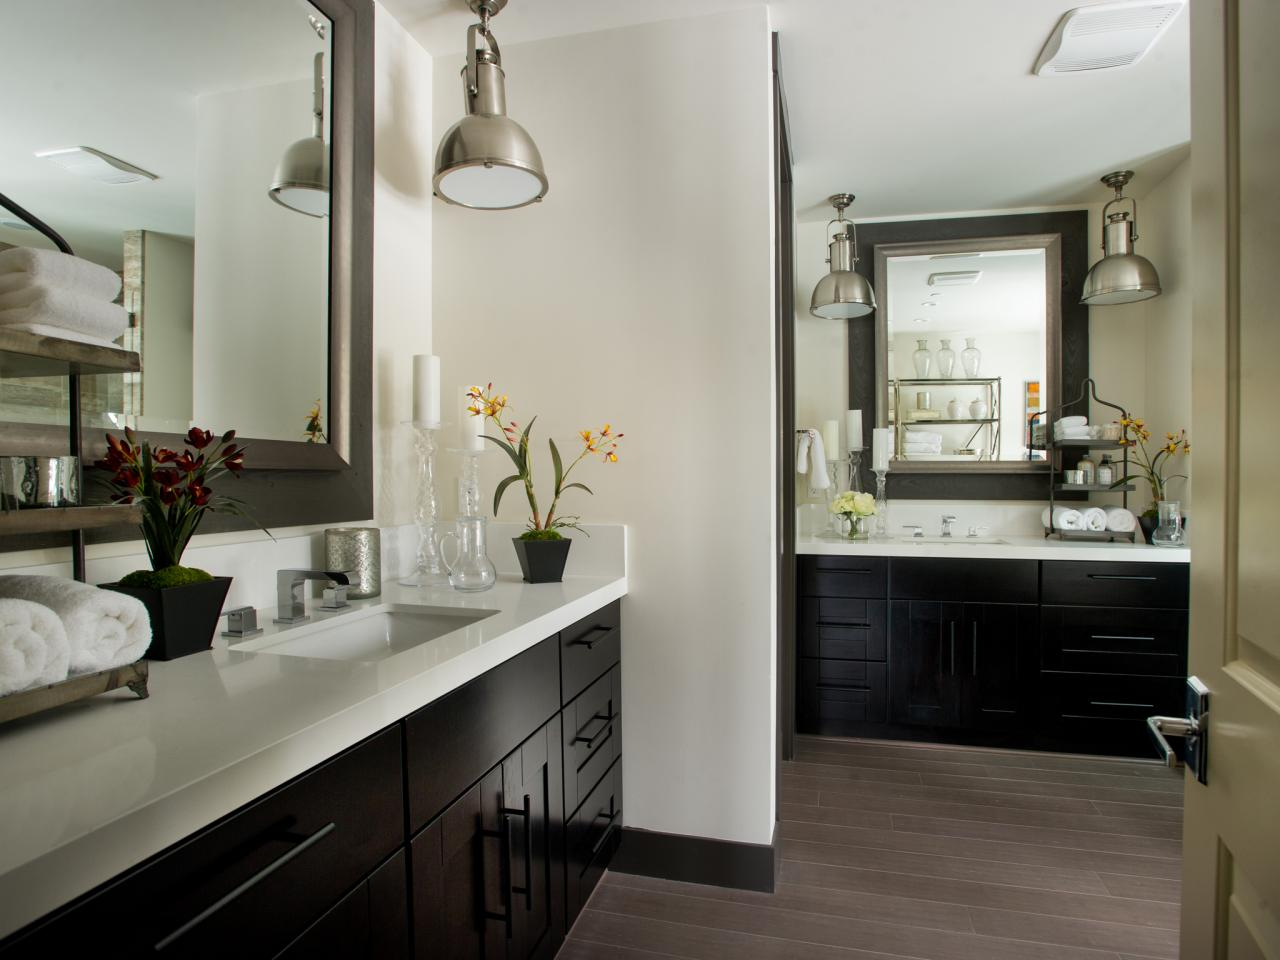 Hgtv dream home 2014 master bathroom pictures and video for Bathroom dressing ideas